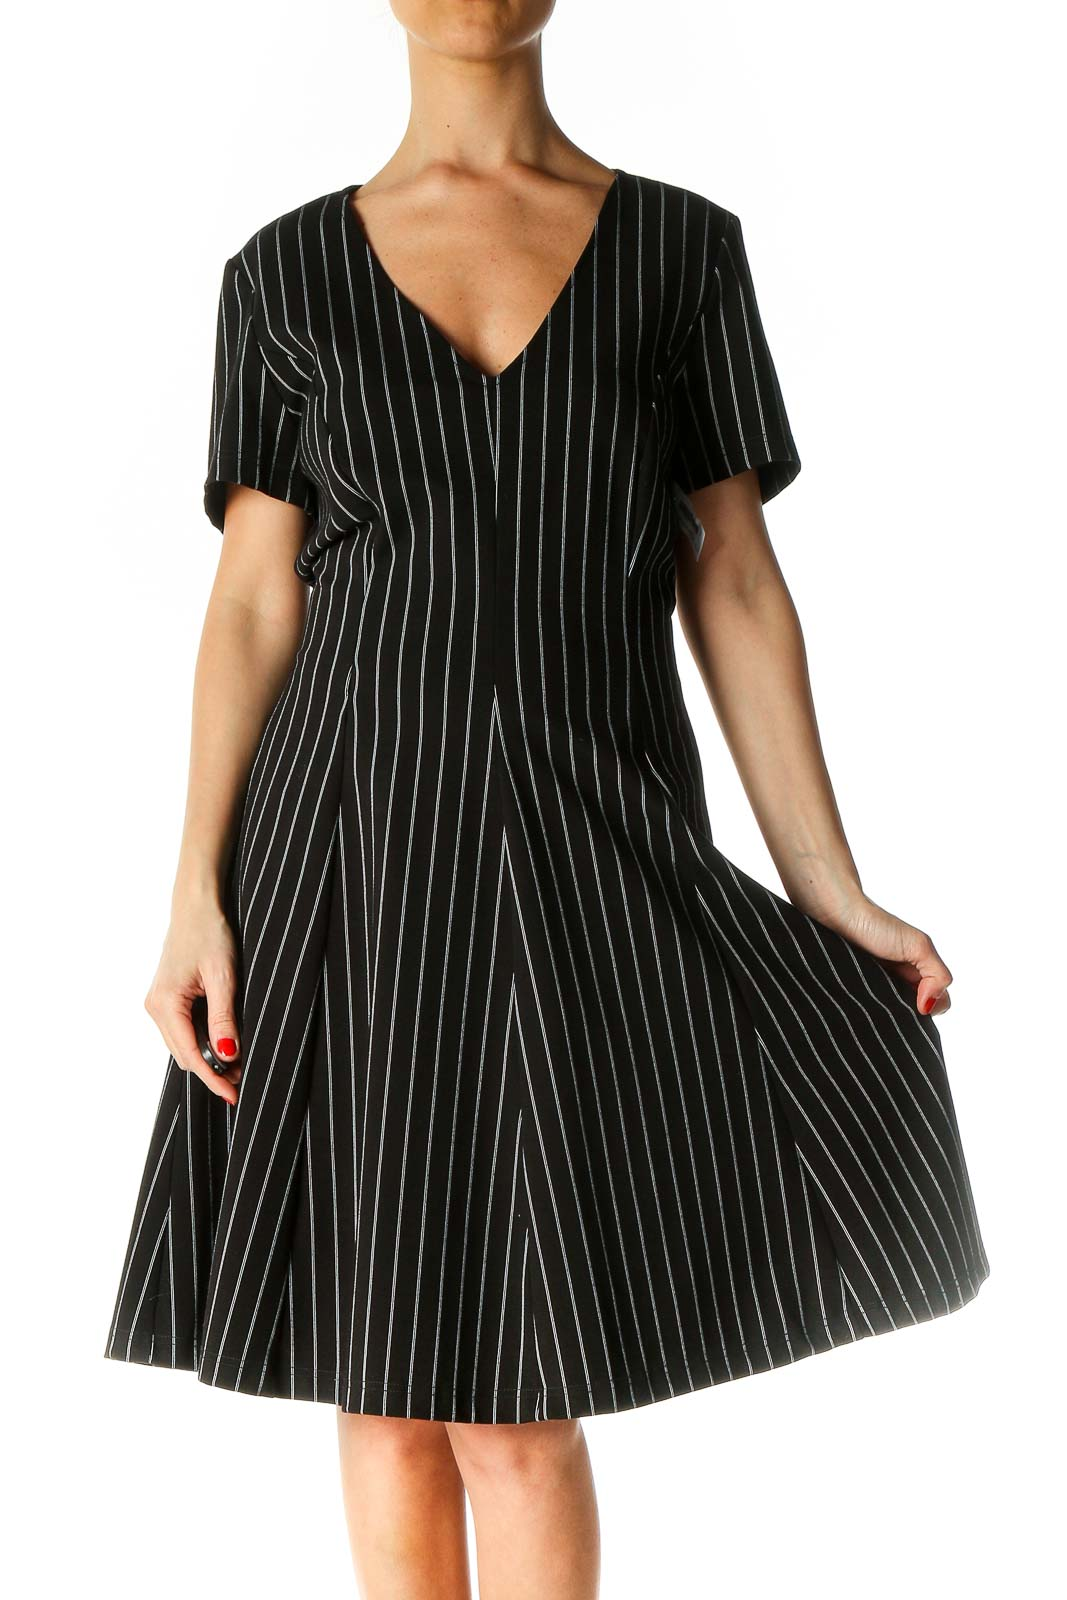 Black Striped Casual Fit & Flare Dress Front